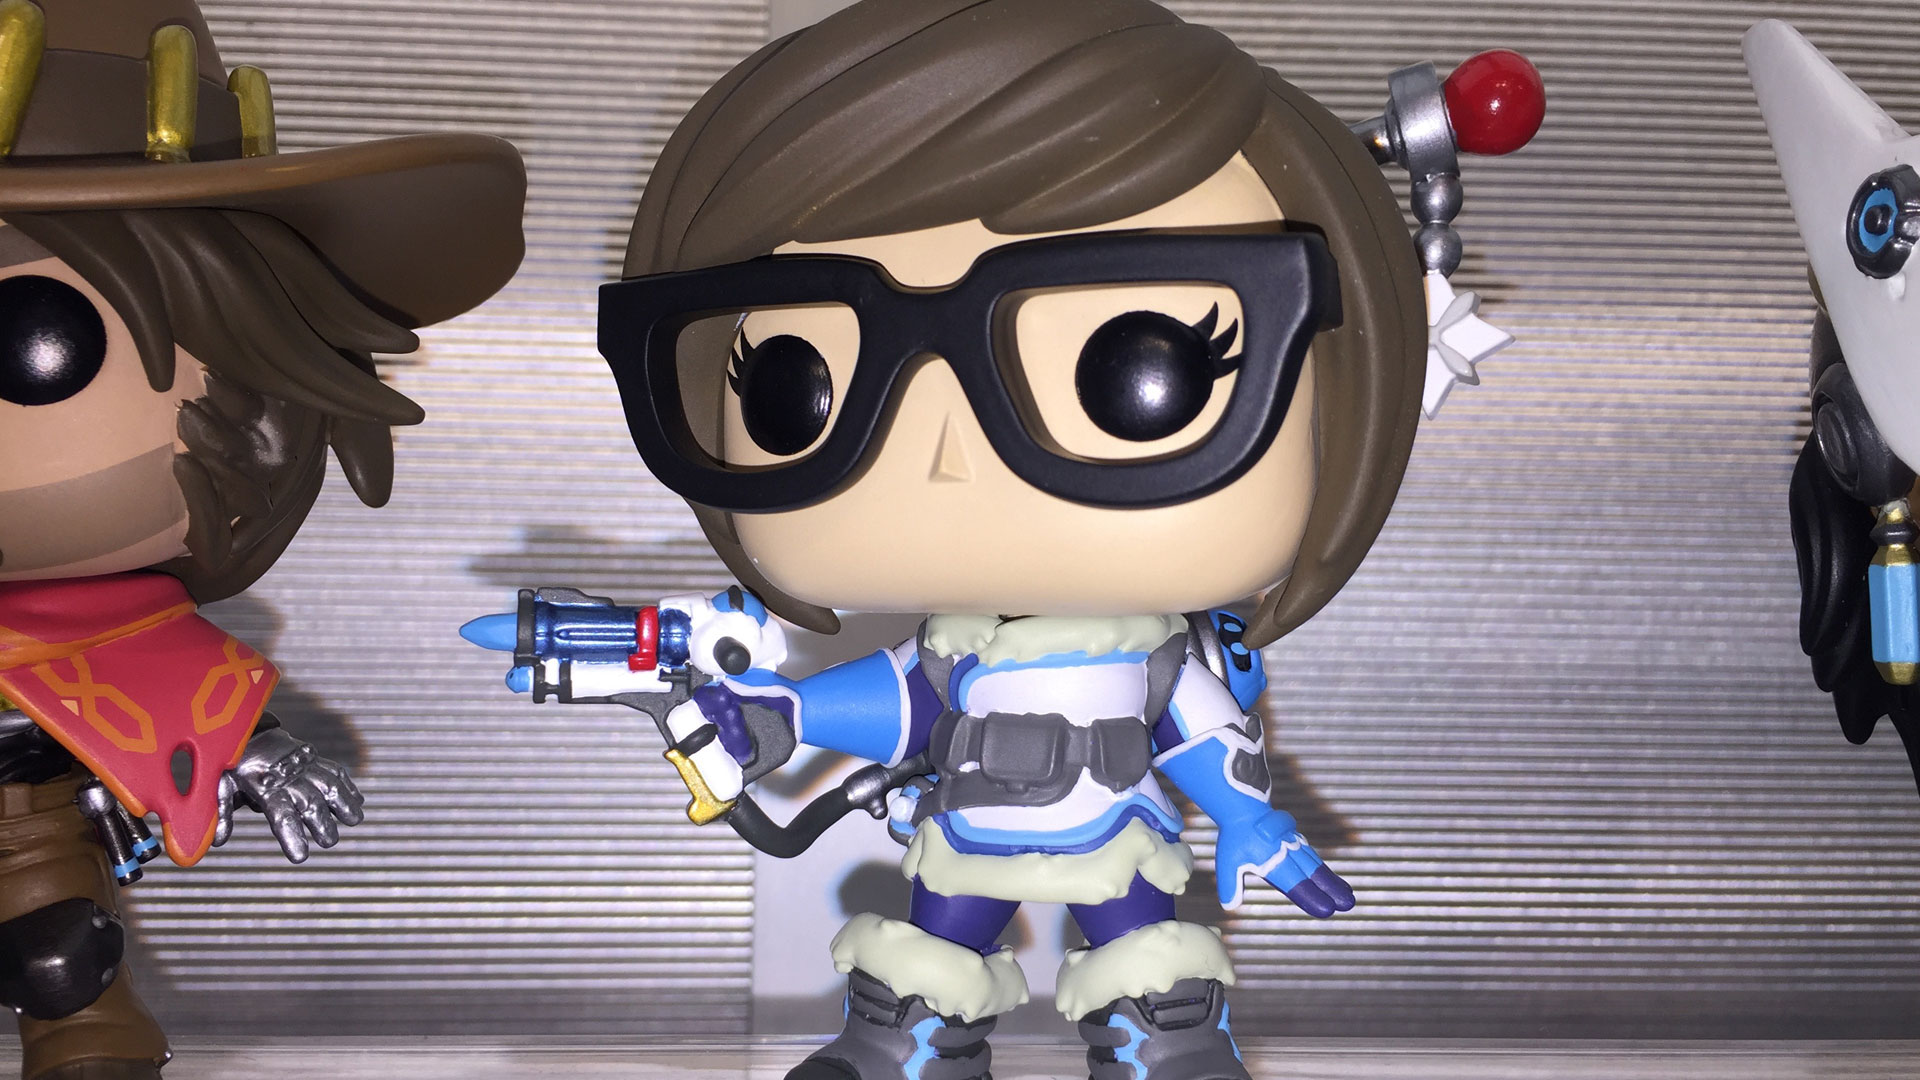 Funko Pop Overwatch Mei Vinyl Figures at Toy Fair 2017